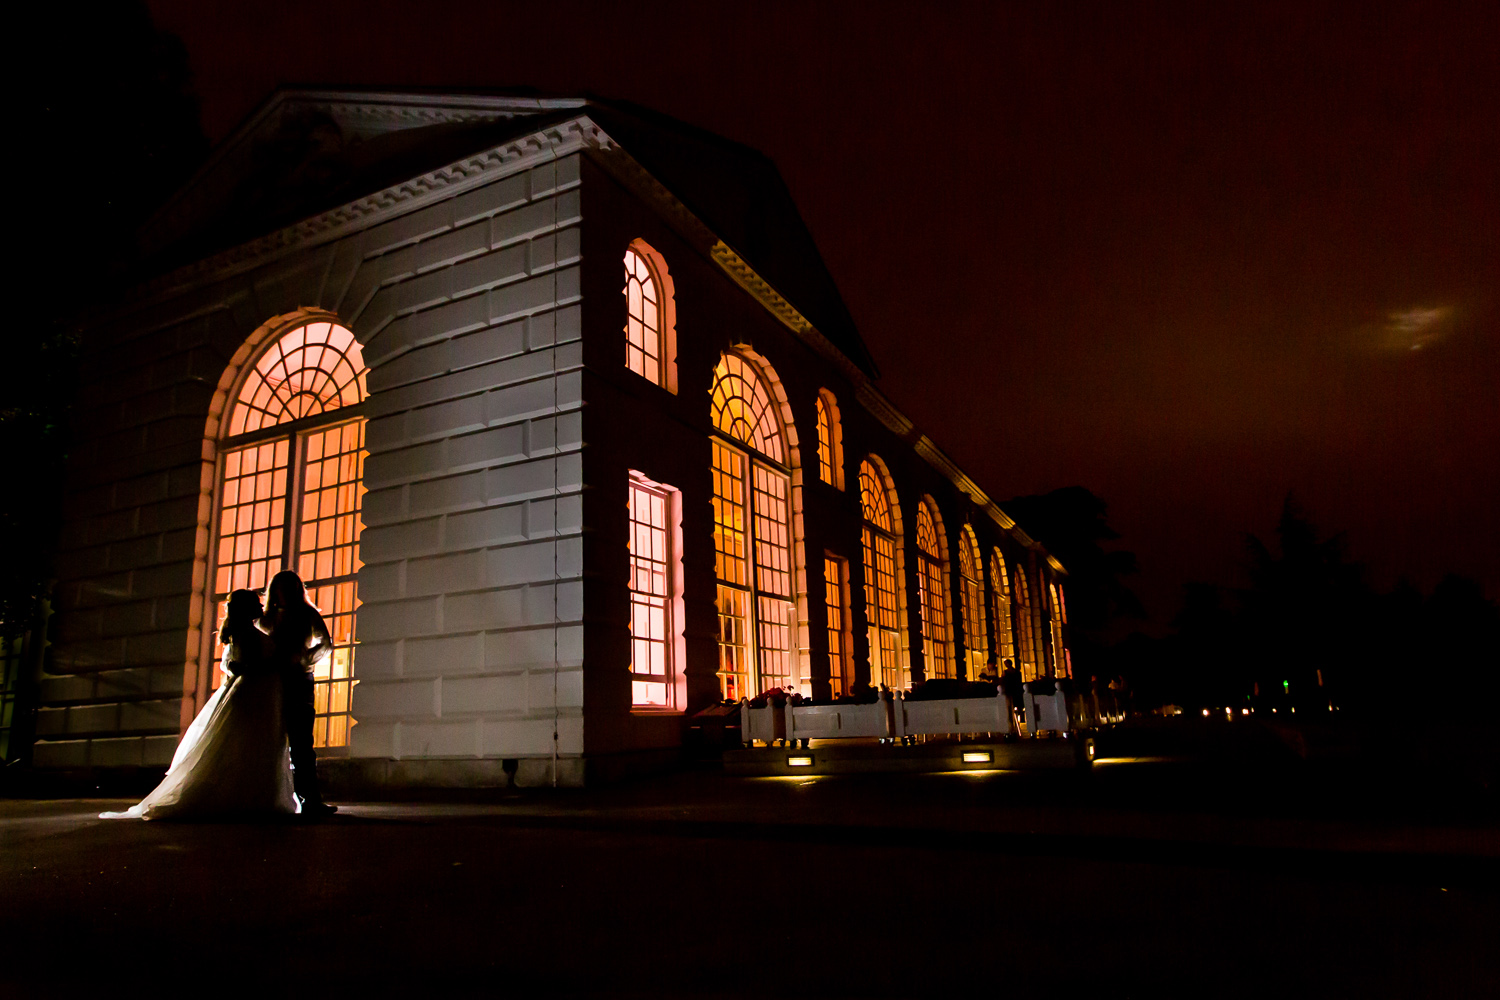 kew-gardens-wedding-bride-groom-night-silhouette-london-photographer